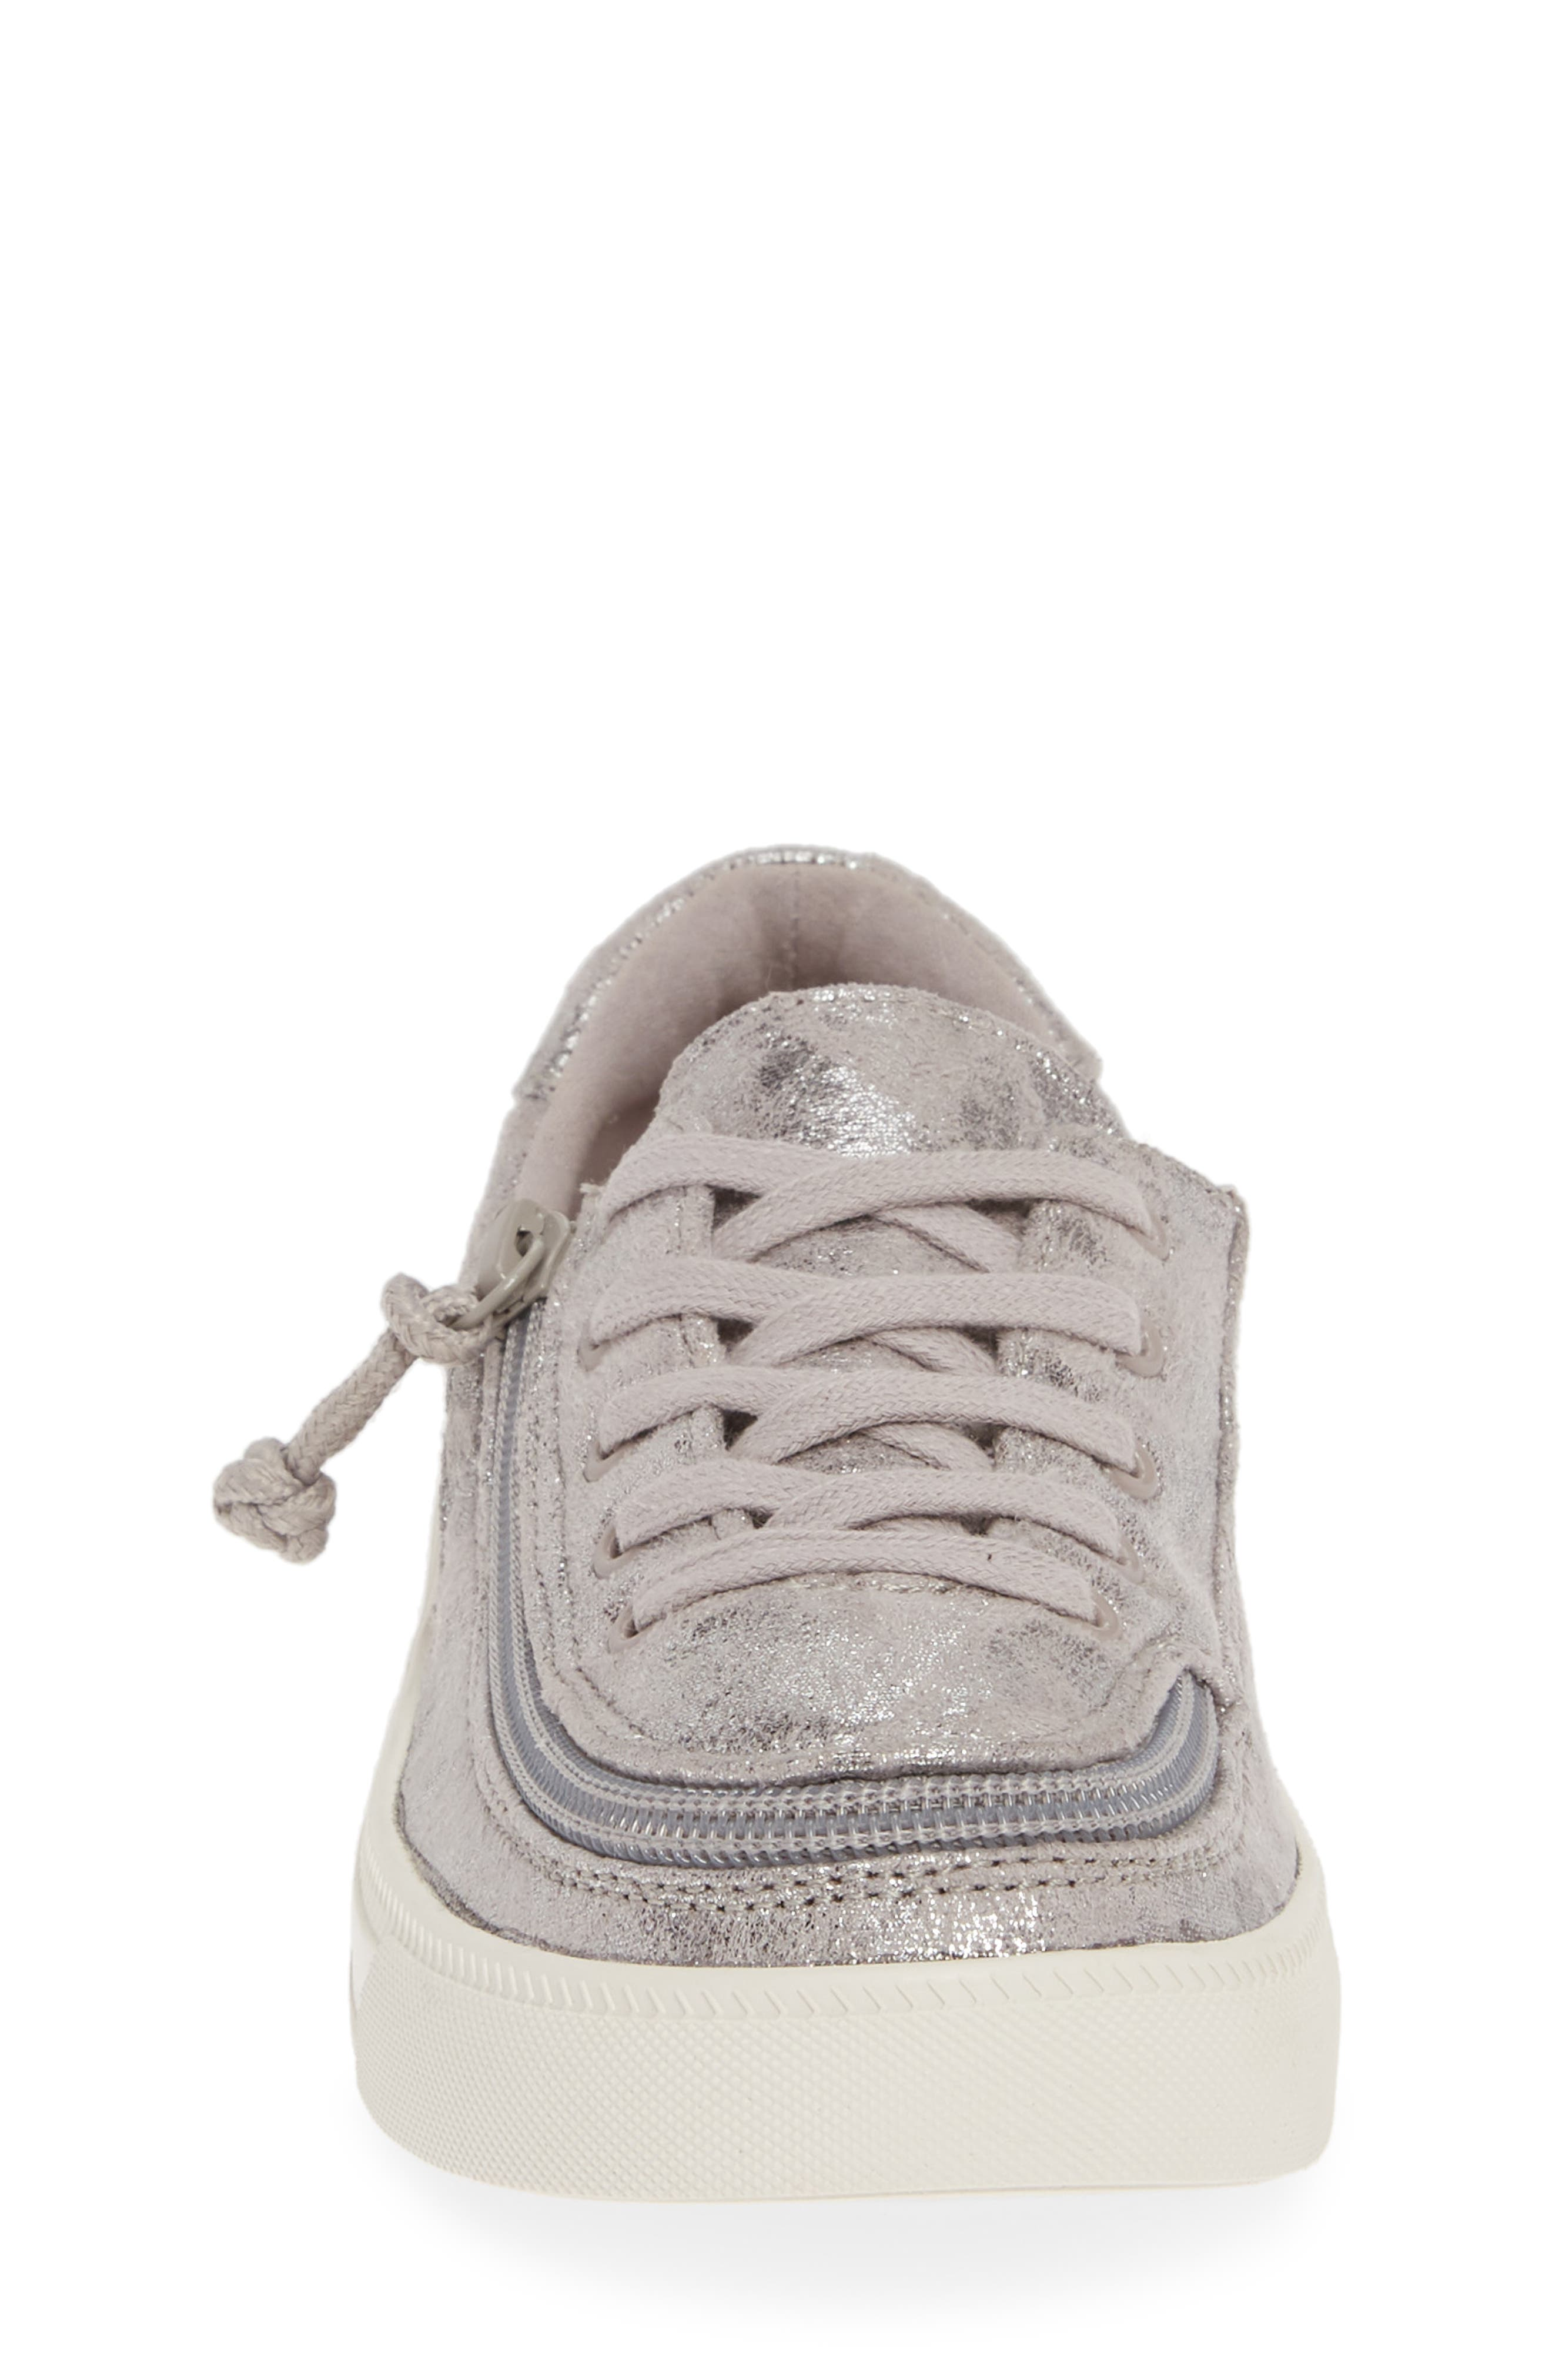 BILLY FOOTWEAR, Zip Around Low Top Sneaker, Alternate thumbnail 4, color, GREY METALLIC